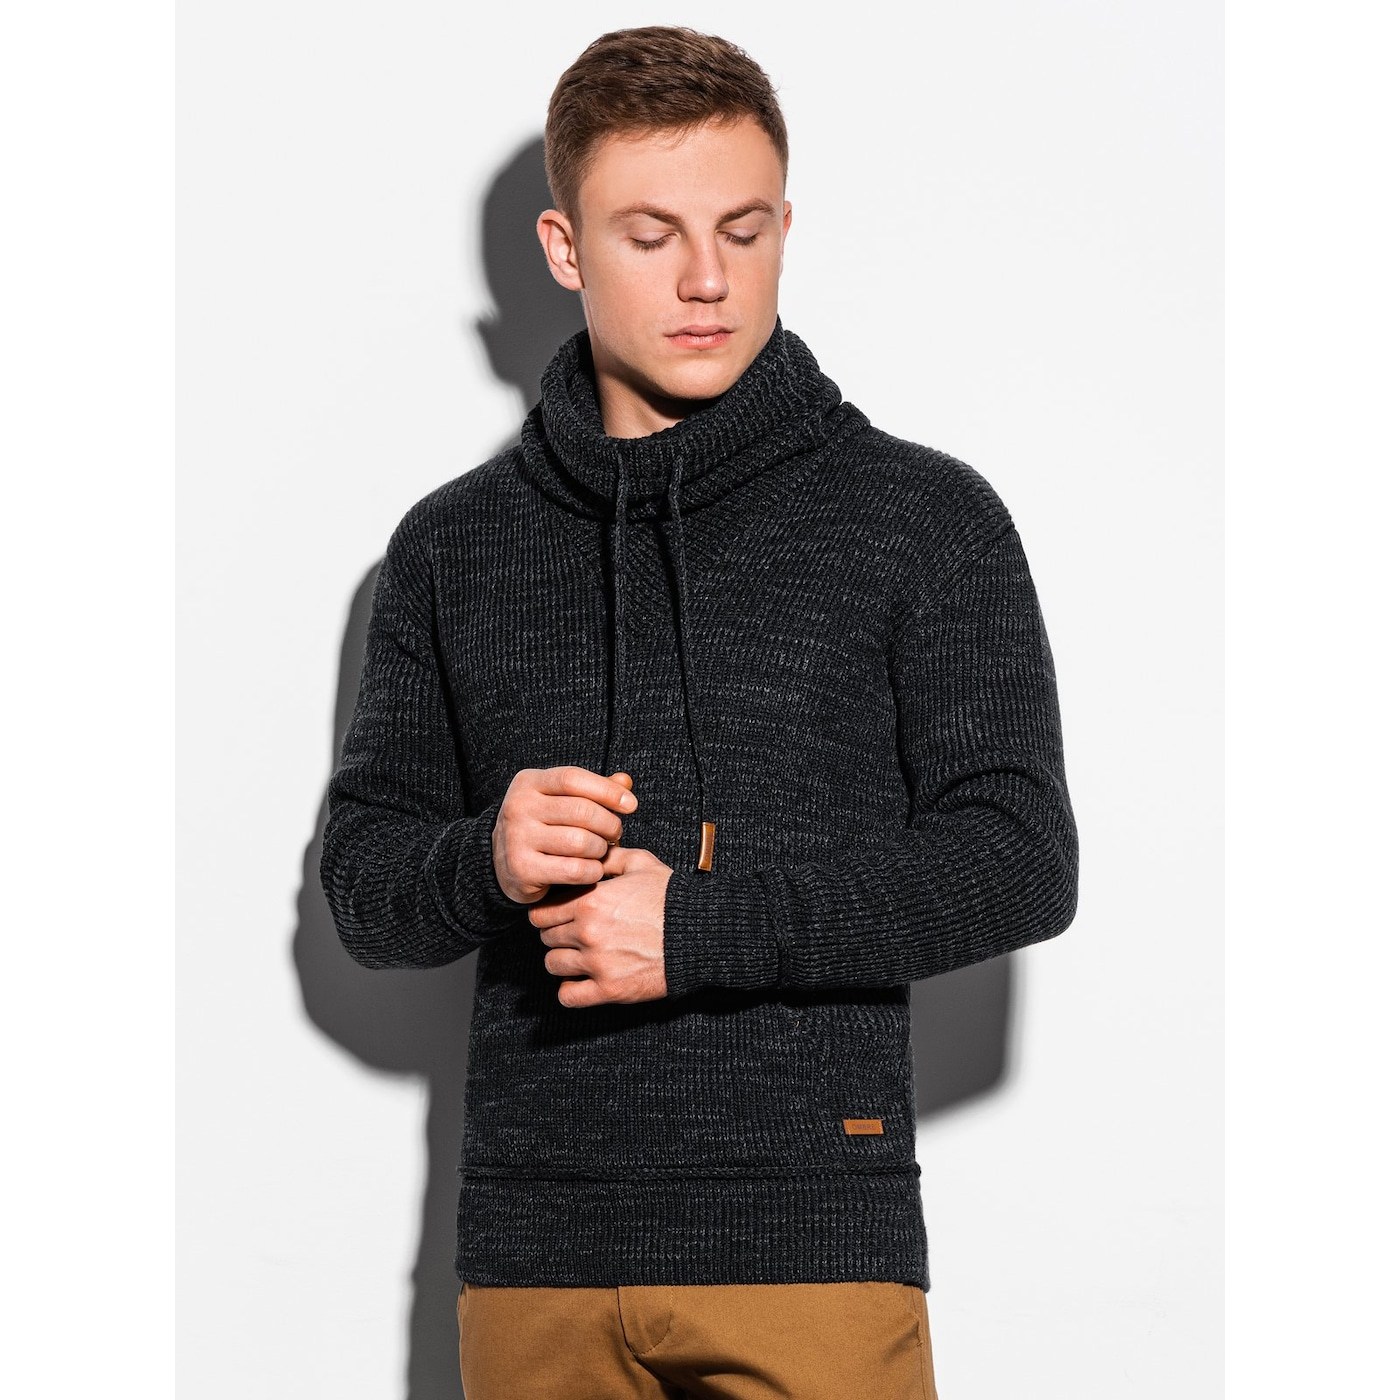 Ombre Clothing Men's sweater E152